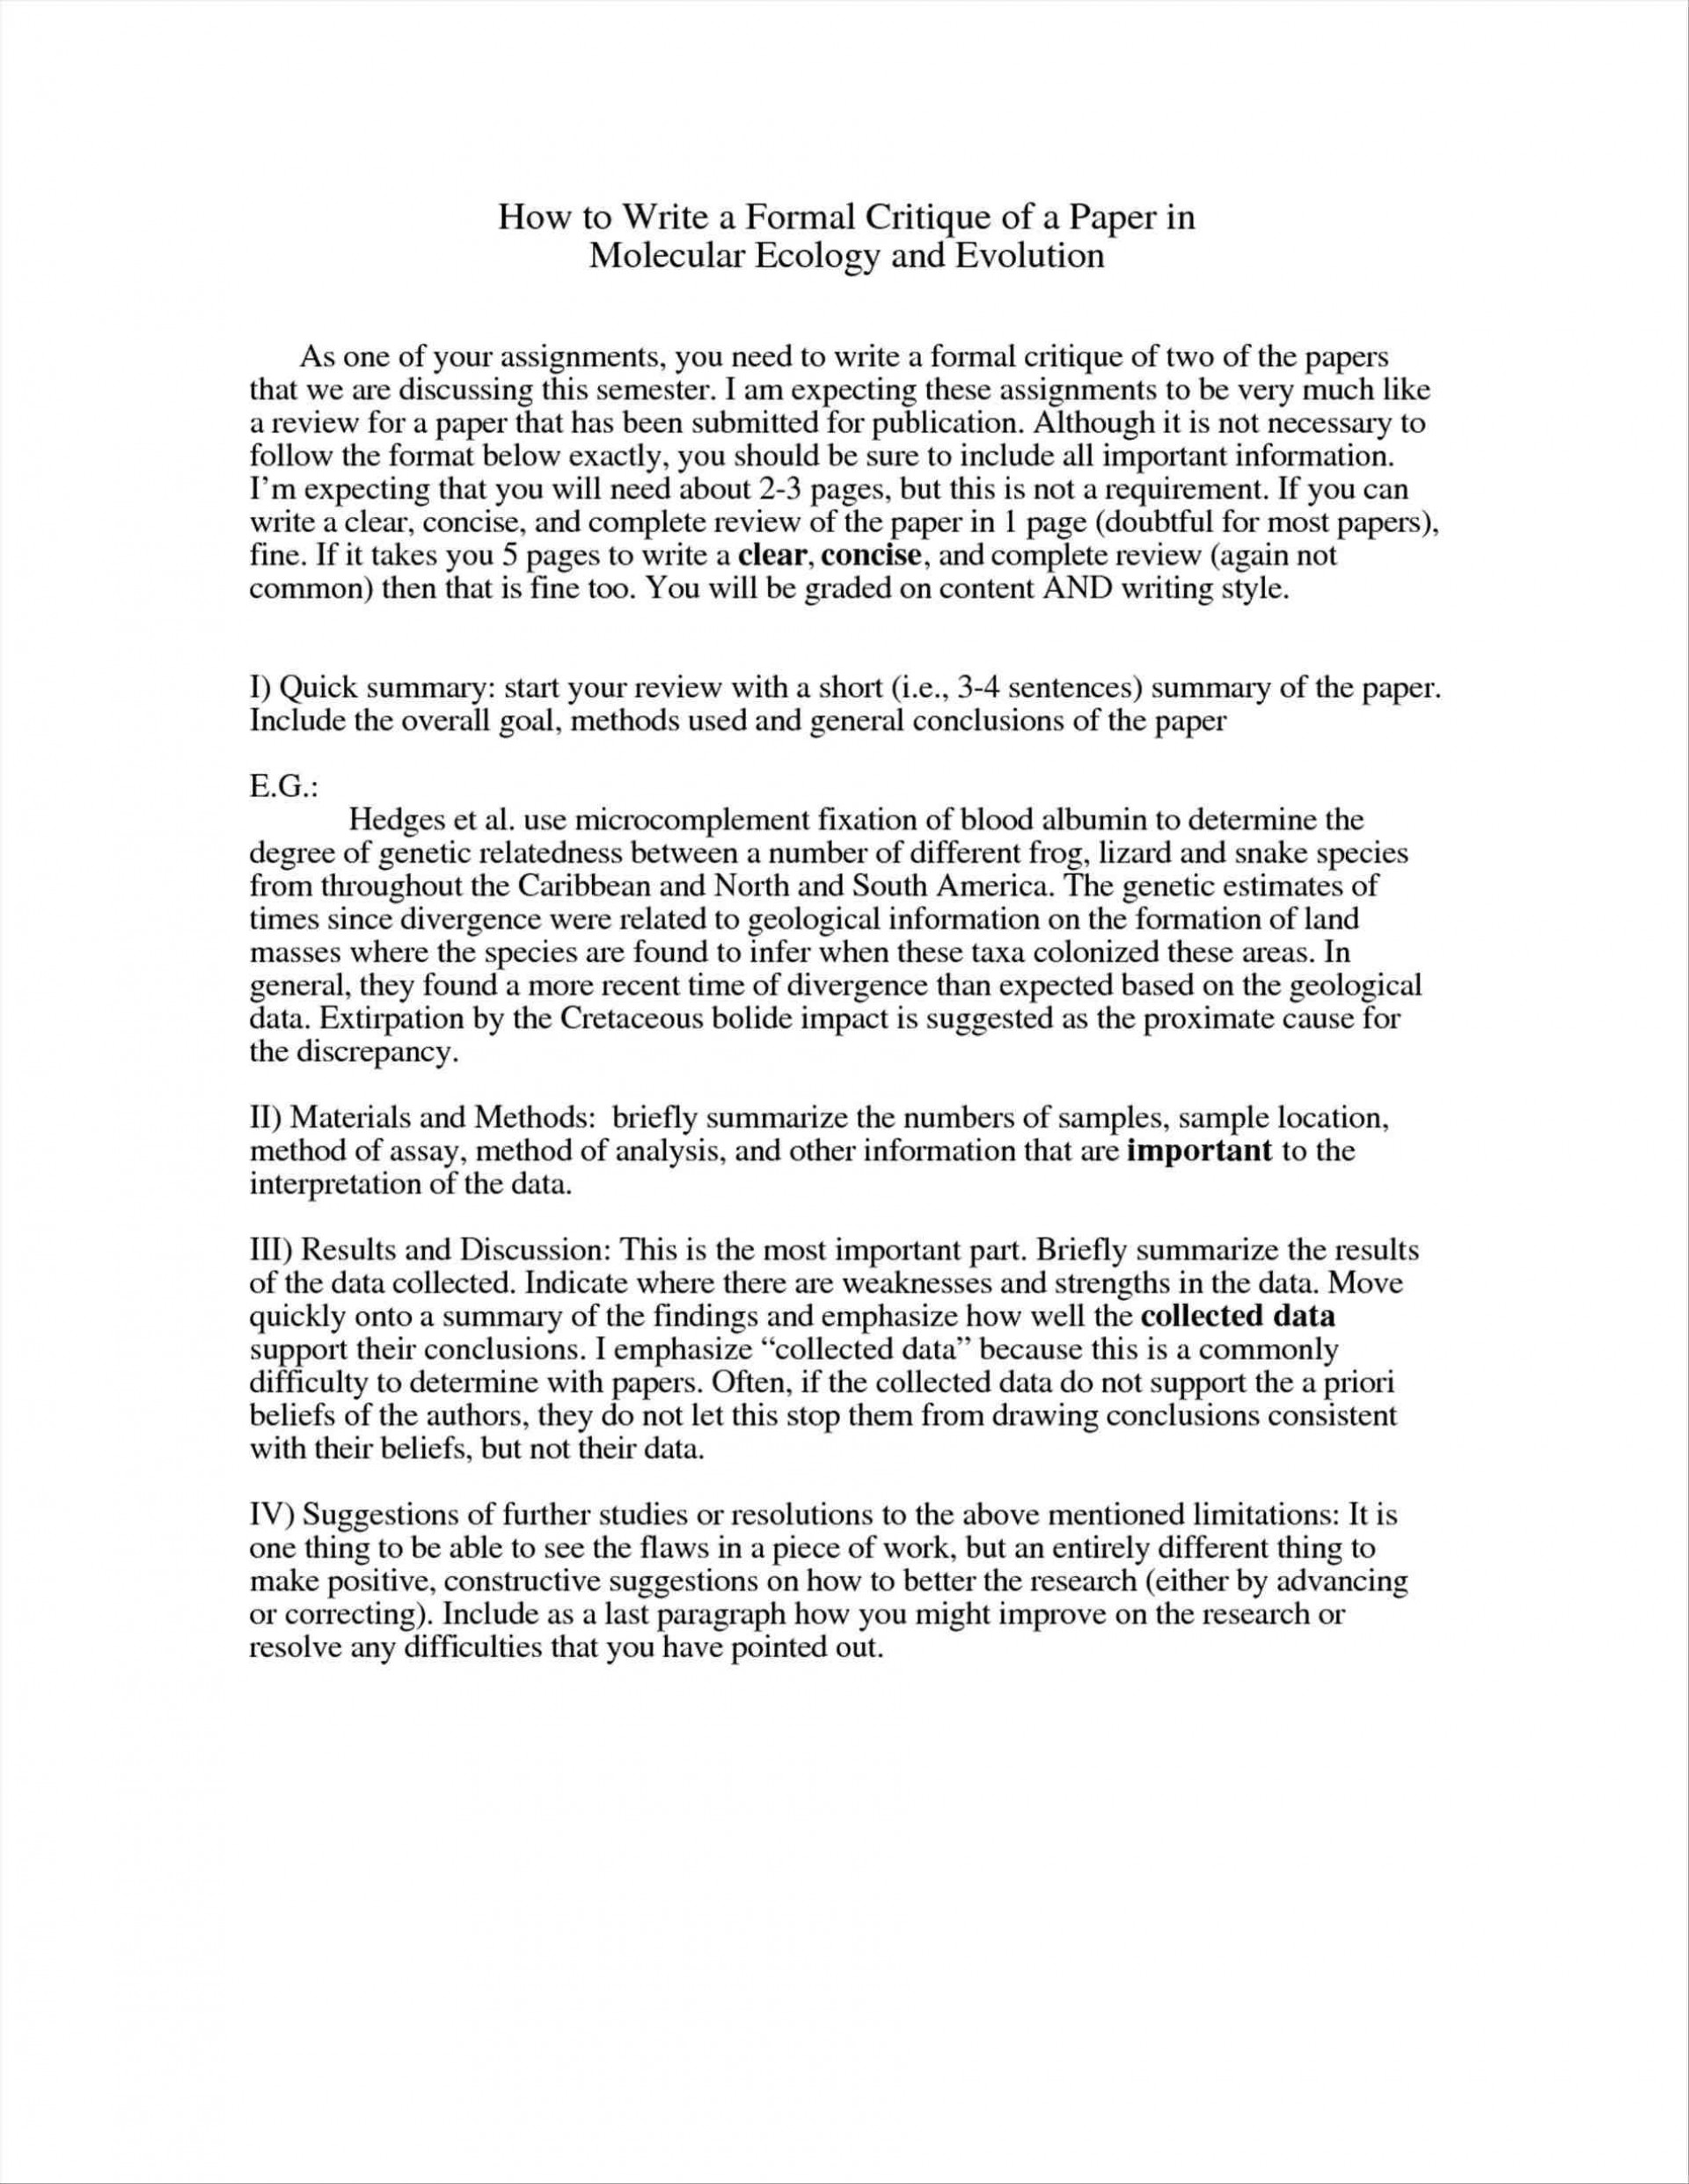 004 Example Of Abstract In Research Paperagalog And Articles On Overleaf Movie Rhjamesriverarmorycom Vita Borderhesisitle Shocking Picture Design Dissertation Rhskateareacom Journal Examples Awful Paper Tagalog 1920